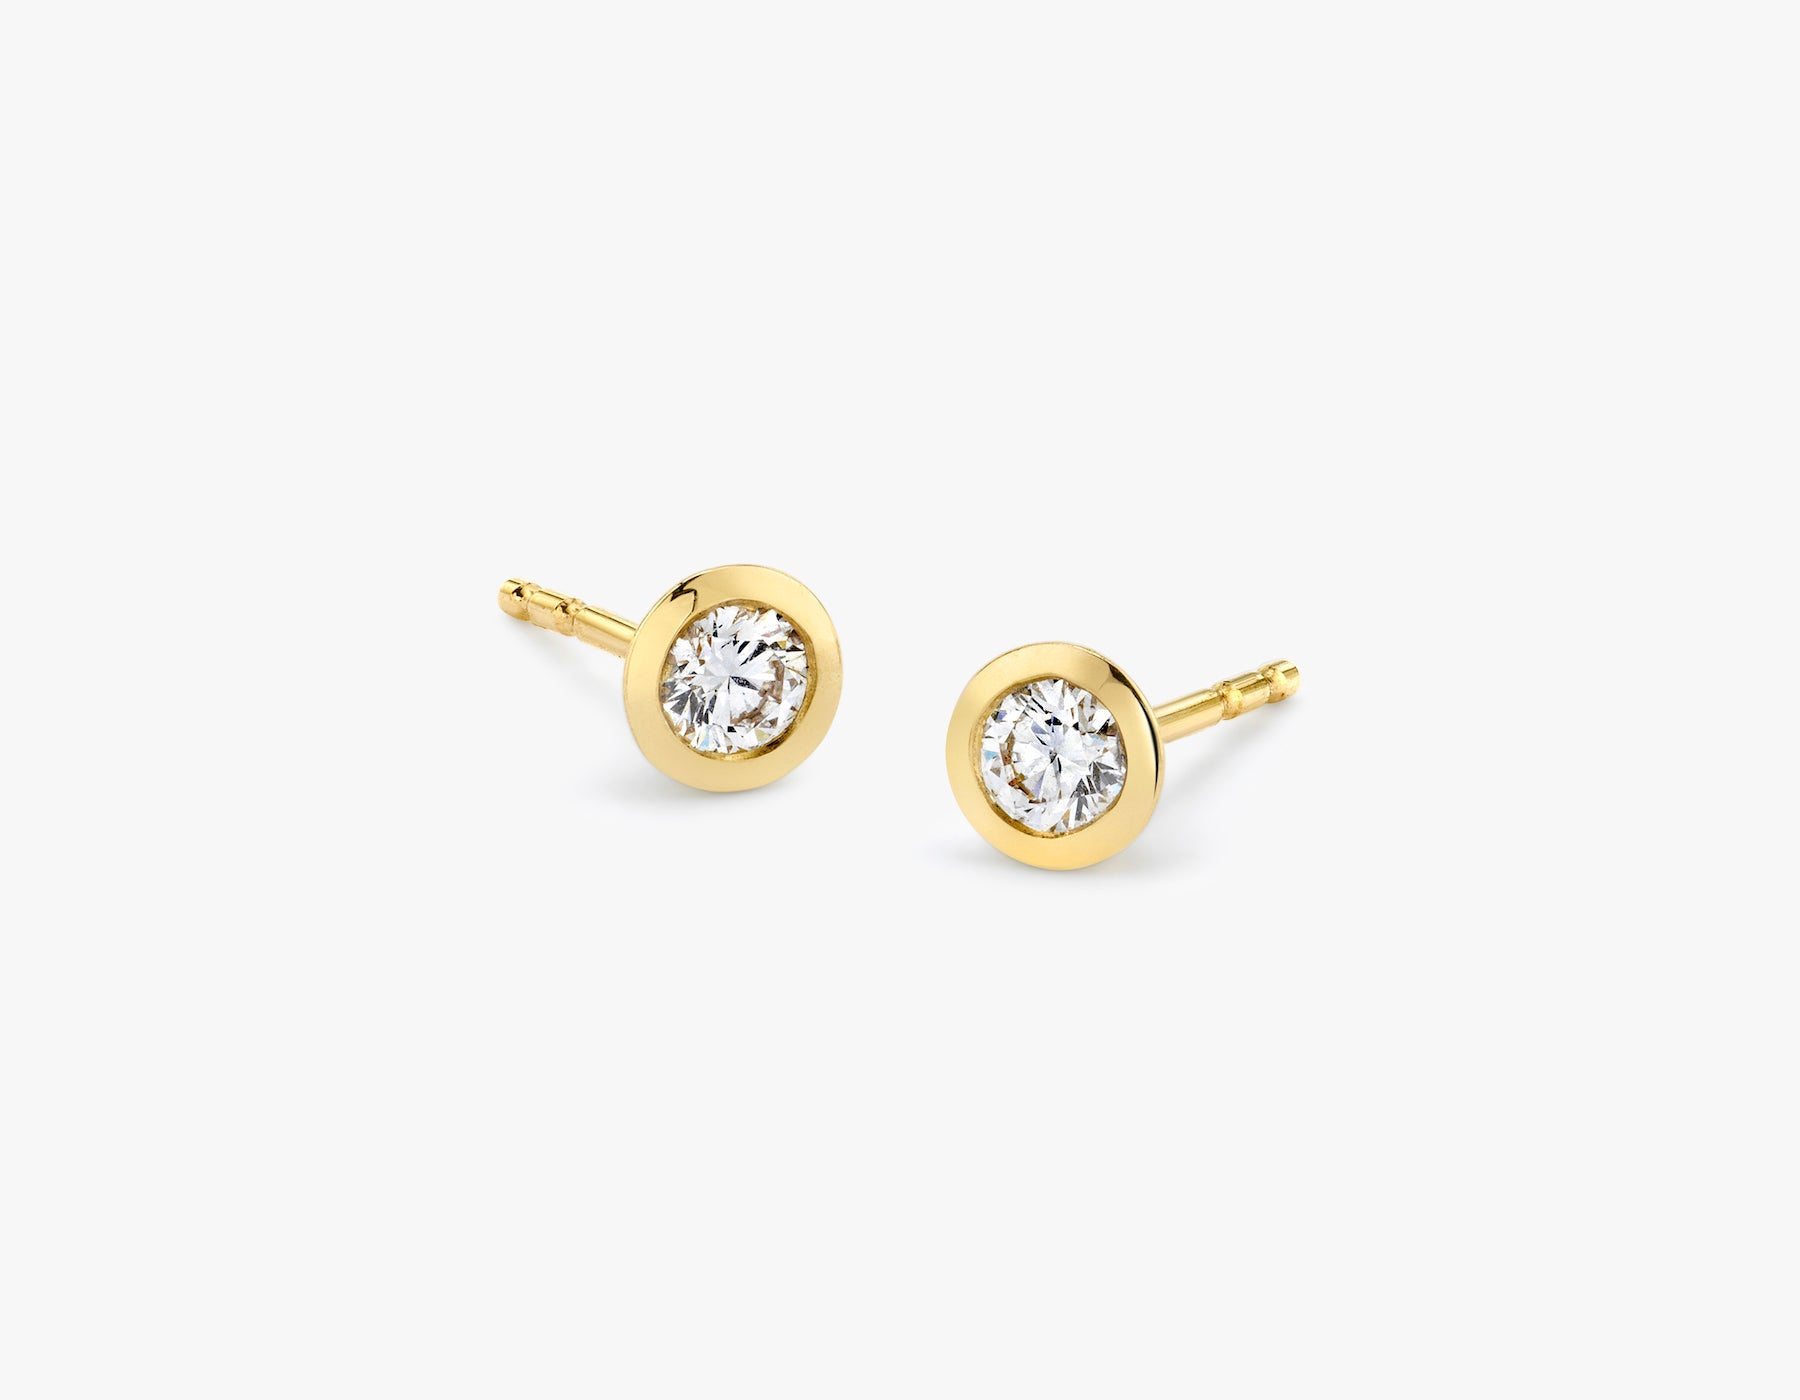 Vrai simple minimalist Round Diamond Bezel Earrings, 14K Yellow Gold